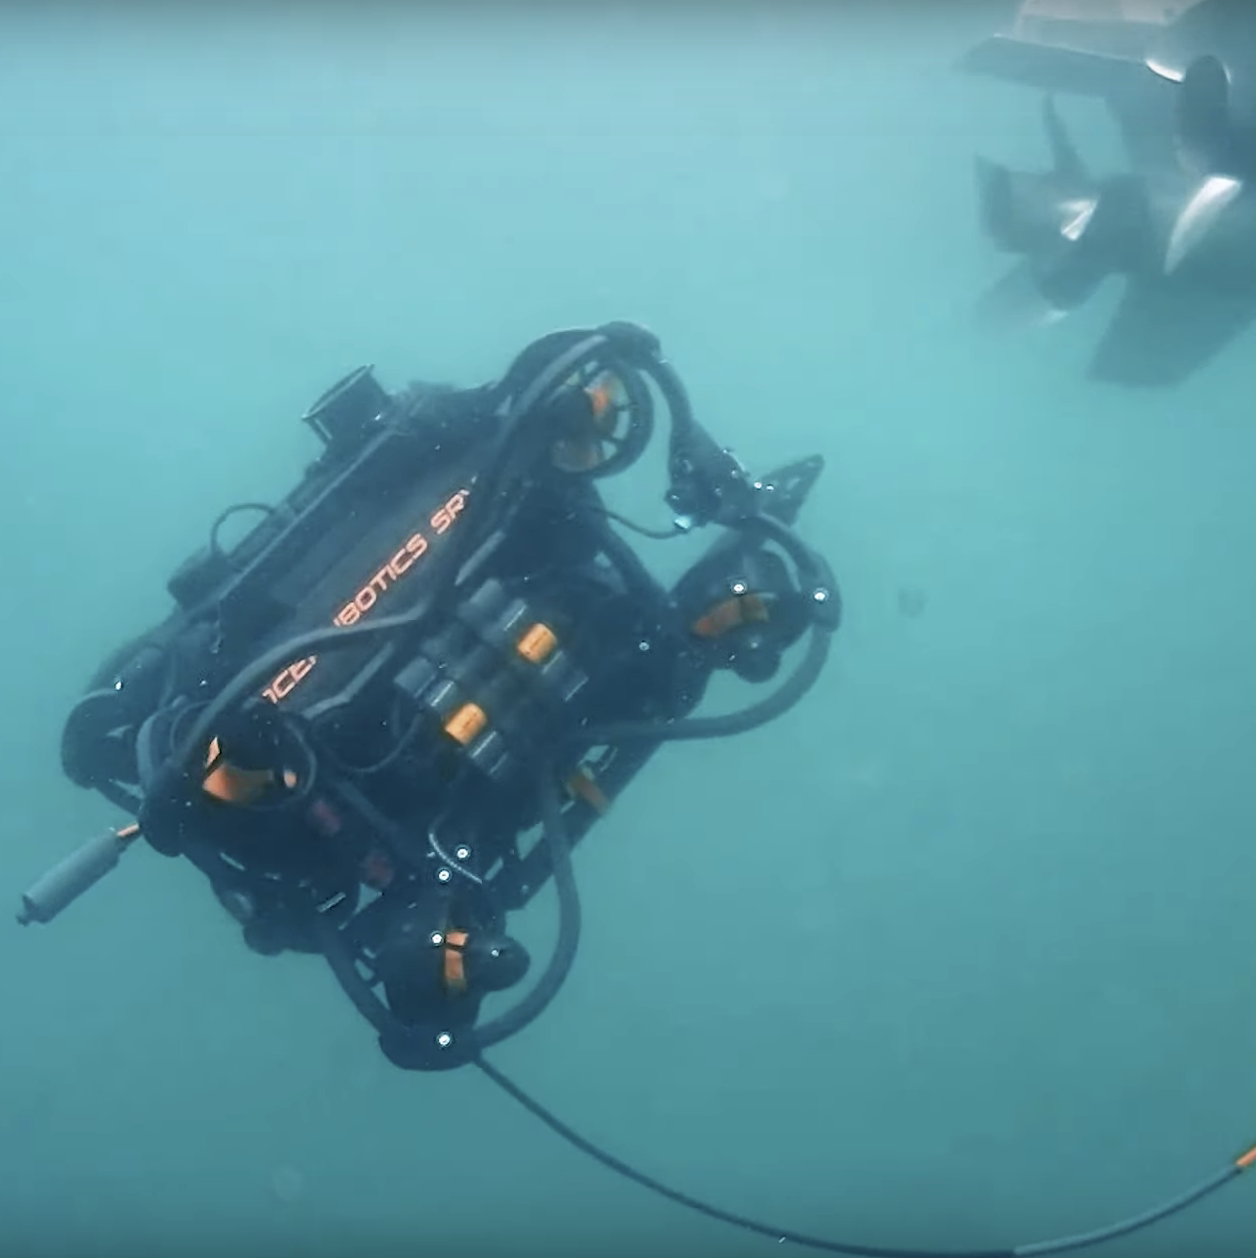 SRV-8 remotely operated underwater vehicle hull inspection